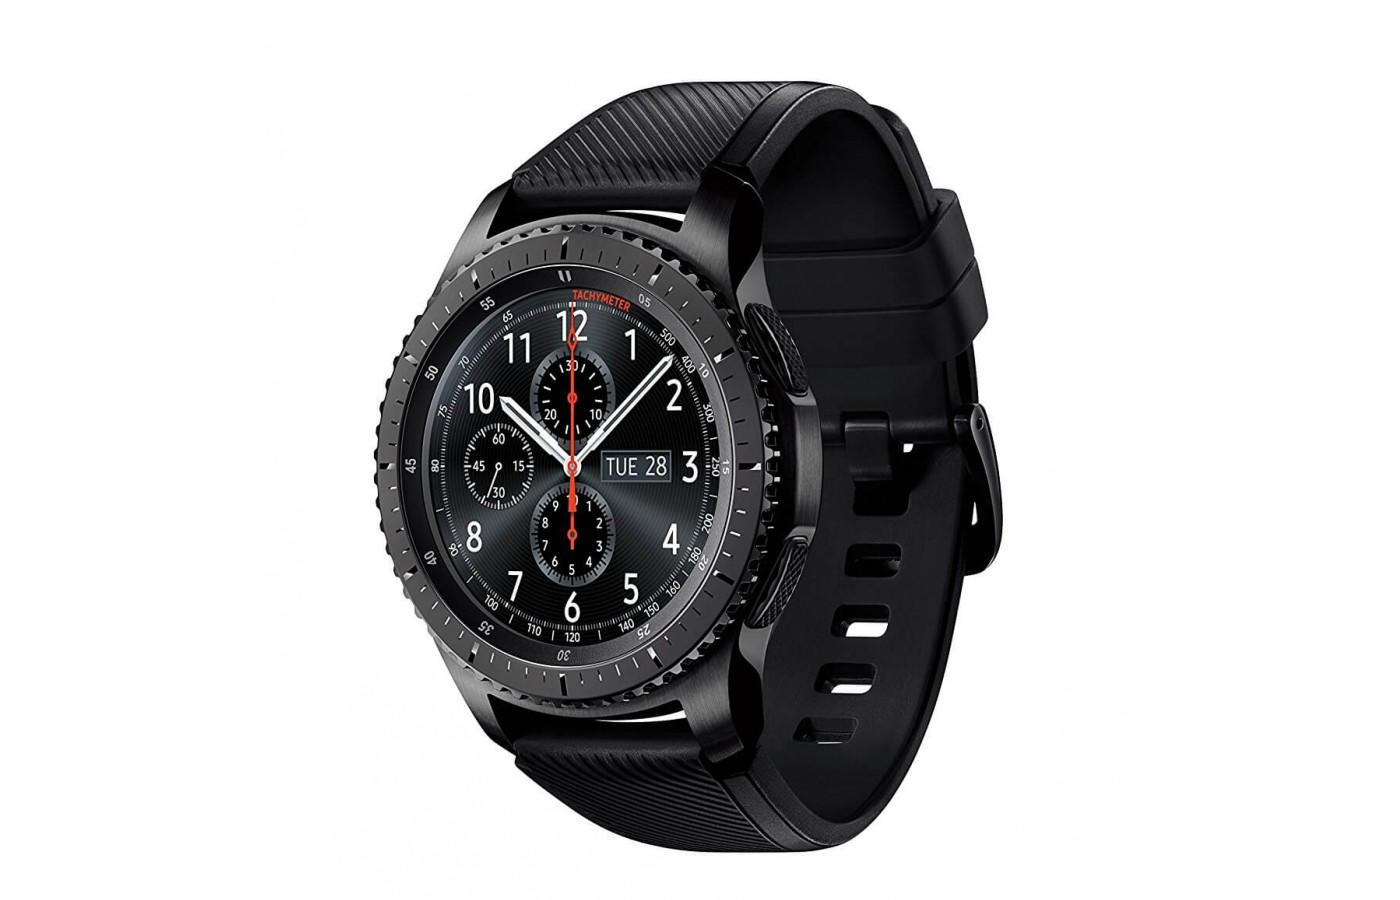 7ec8da9d699 ... the Samsung Gear S3 Frontier shown from the front side ...